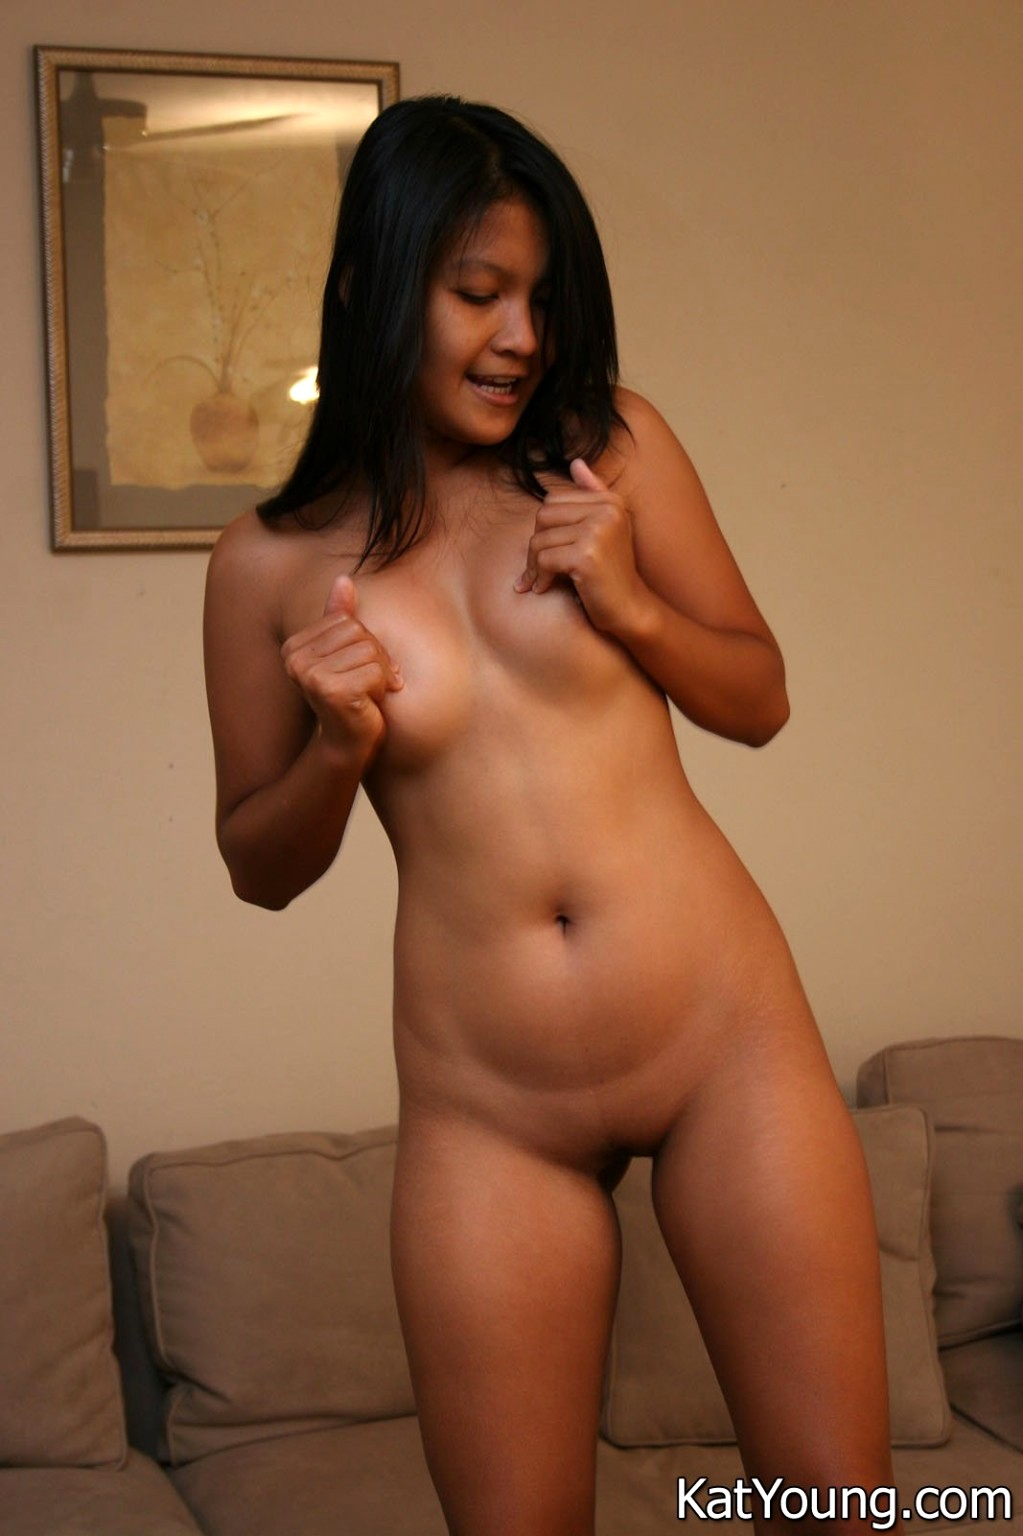 naked photos of middle age woman